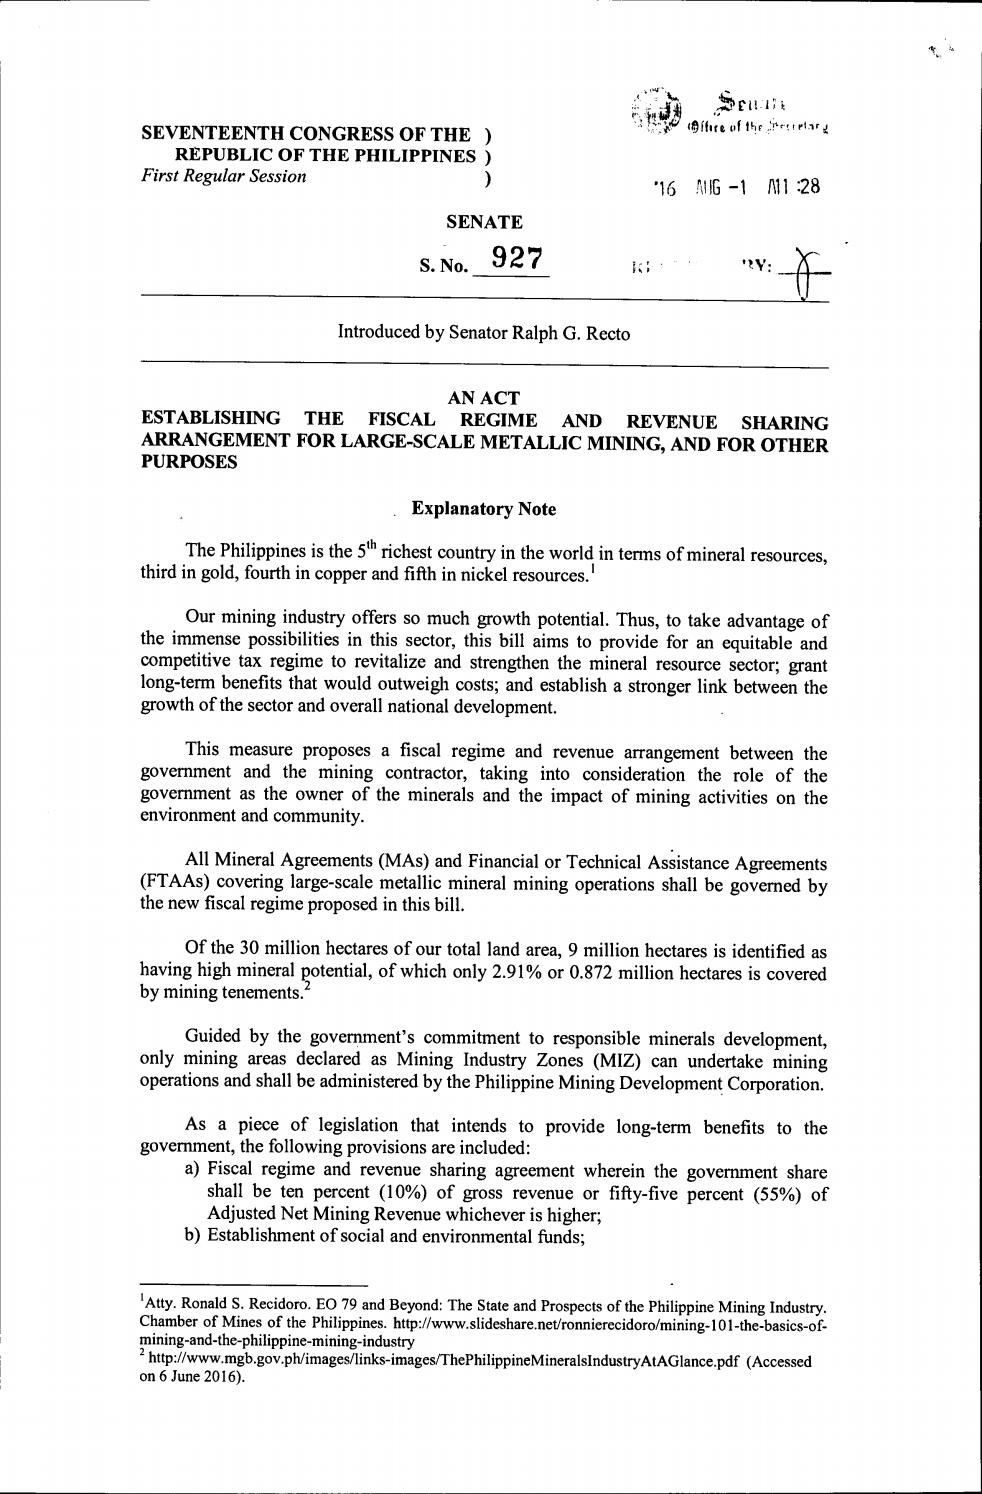 Sb 927 An Act Establishing The Fiscal Regime And Revenue Sharing